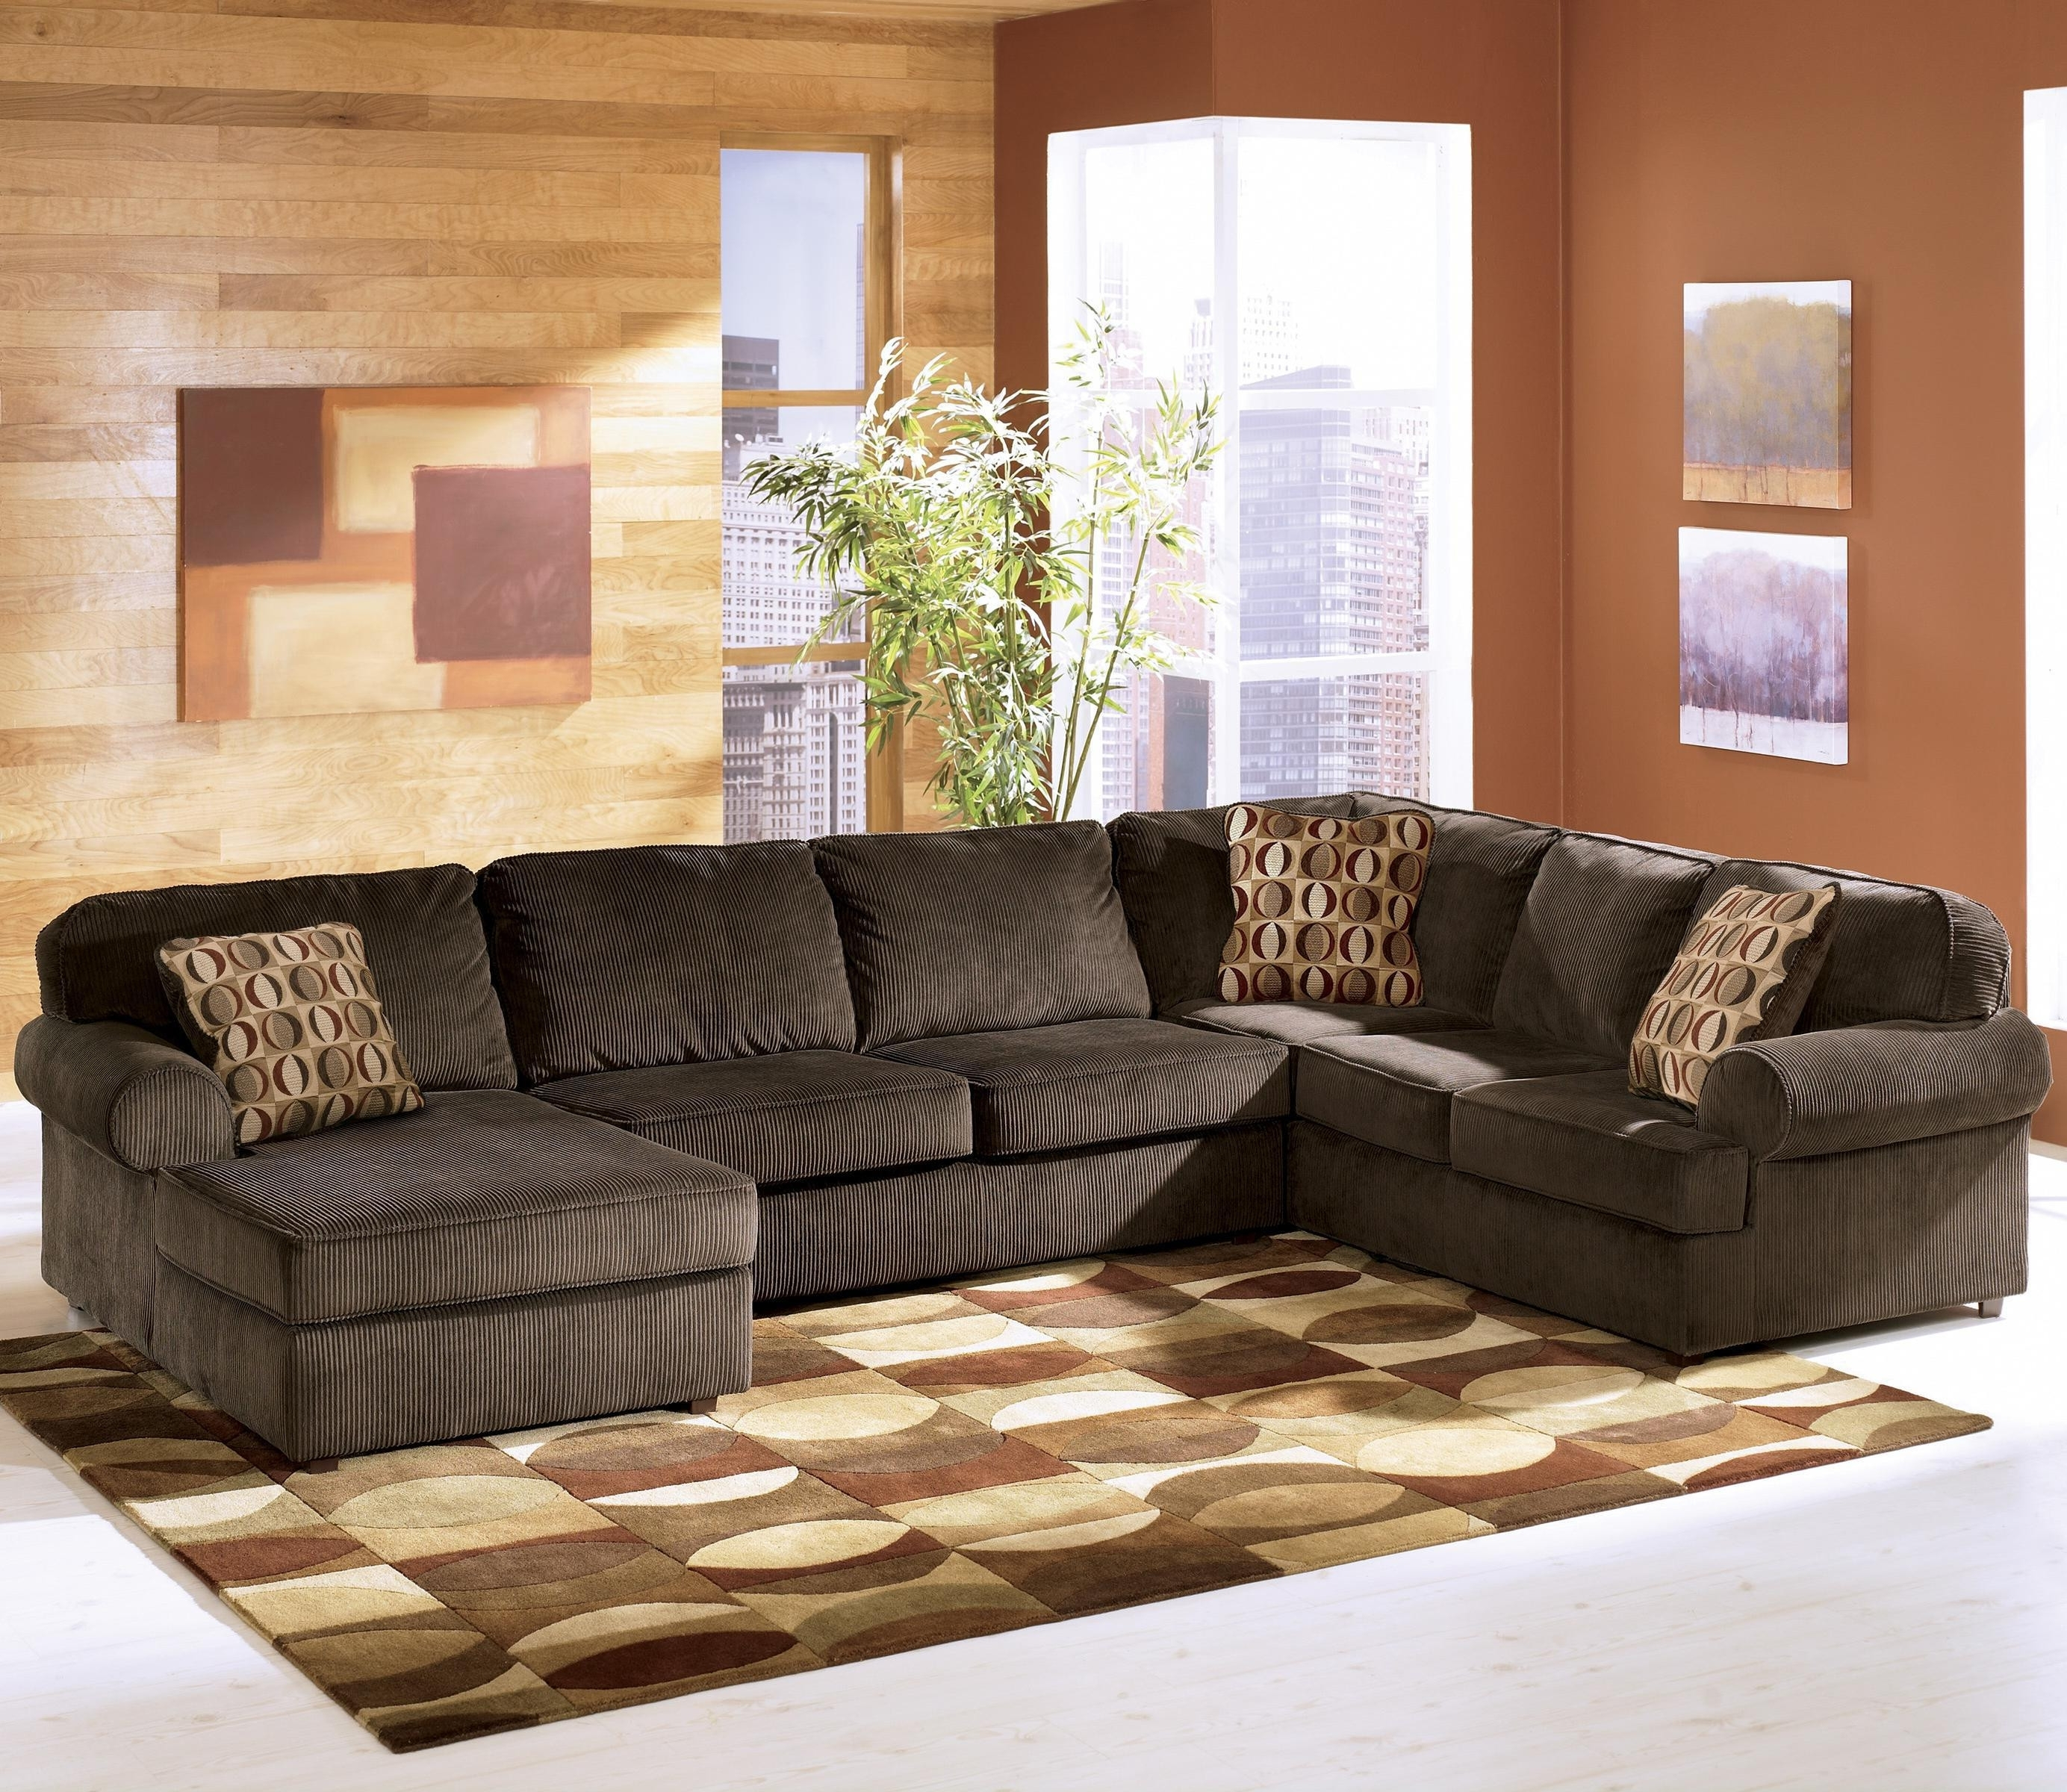 Ashley Furniture Wilmington Nc Best Of Signature Designashley pertaining to Wilmington Nc Sectional Sofas (Image 4 of 10)